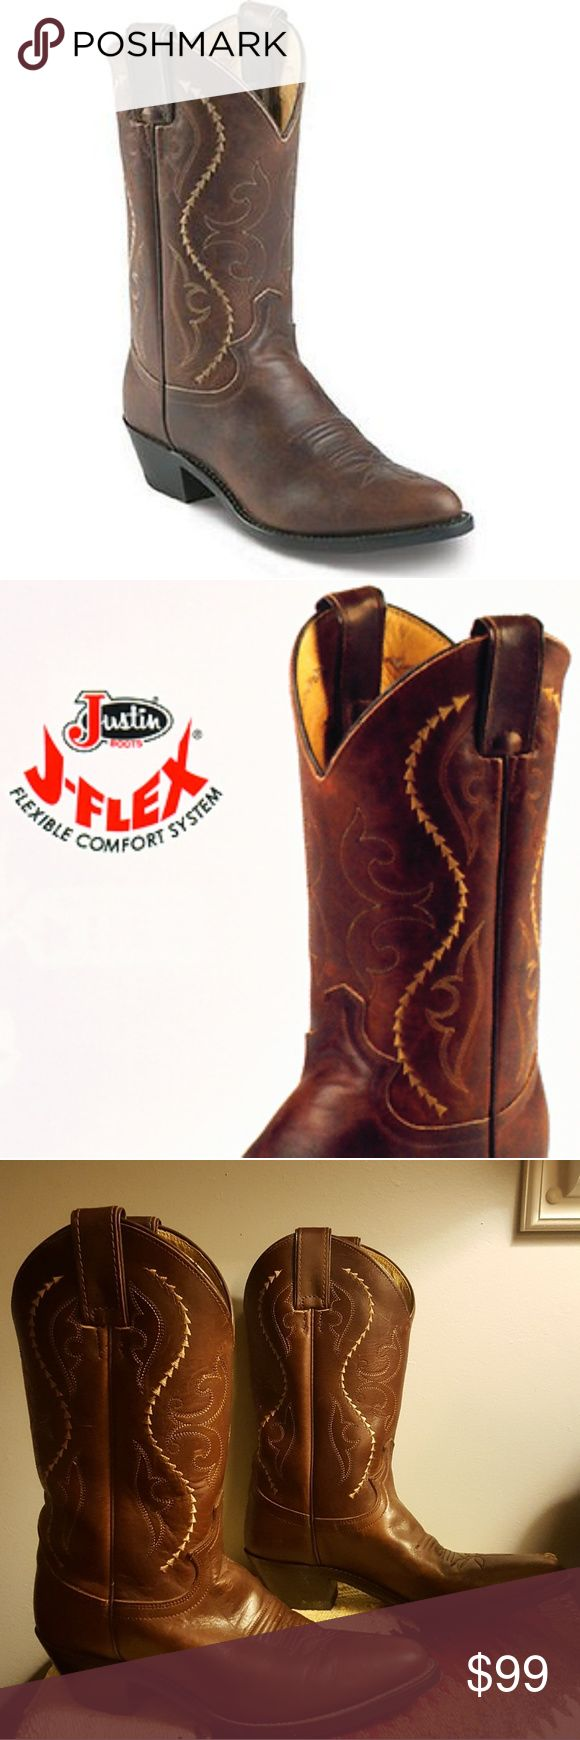 "Make an offer! Justin womens Cowboy Boots - size 7 STYLE:  #JUS-L4937 DESCRIPTION:  COFFEE SALTILLO with COFFEE SALTILLO top.  LADIES' WESTERN FASHION BOOTSSIZE:  7B COLOR:  COFFEE LEATHER:  SALTILLO COWHIDE TOE:  J6  or Medium Round toe HEEL:  M  1 5/8 Long Base Riding heel HEIGHT:  11"" WELT:  SINGLE STITCHED INSOLE:  J-FLEX® COMFORT SYSTEM OUTSOLE:  LEATHER  Excellent overall condition... general light wear...worn twice. Just too tight for me.  Please make an offer!  I'd love to see these…"